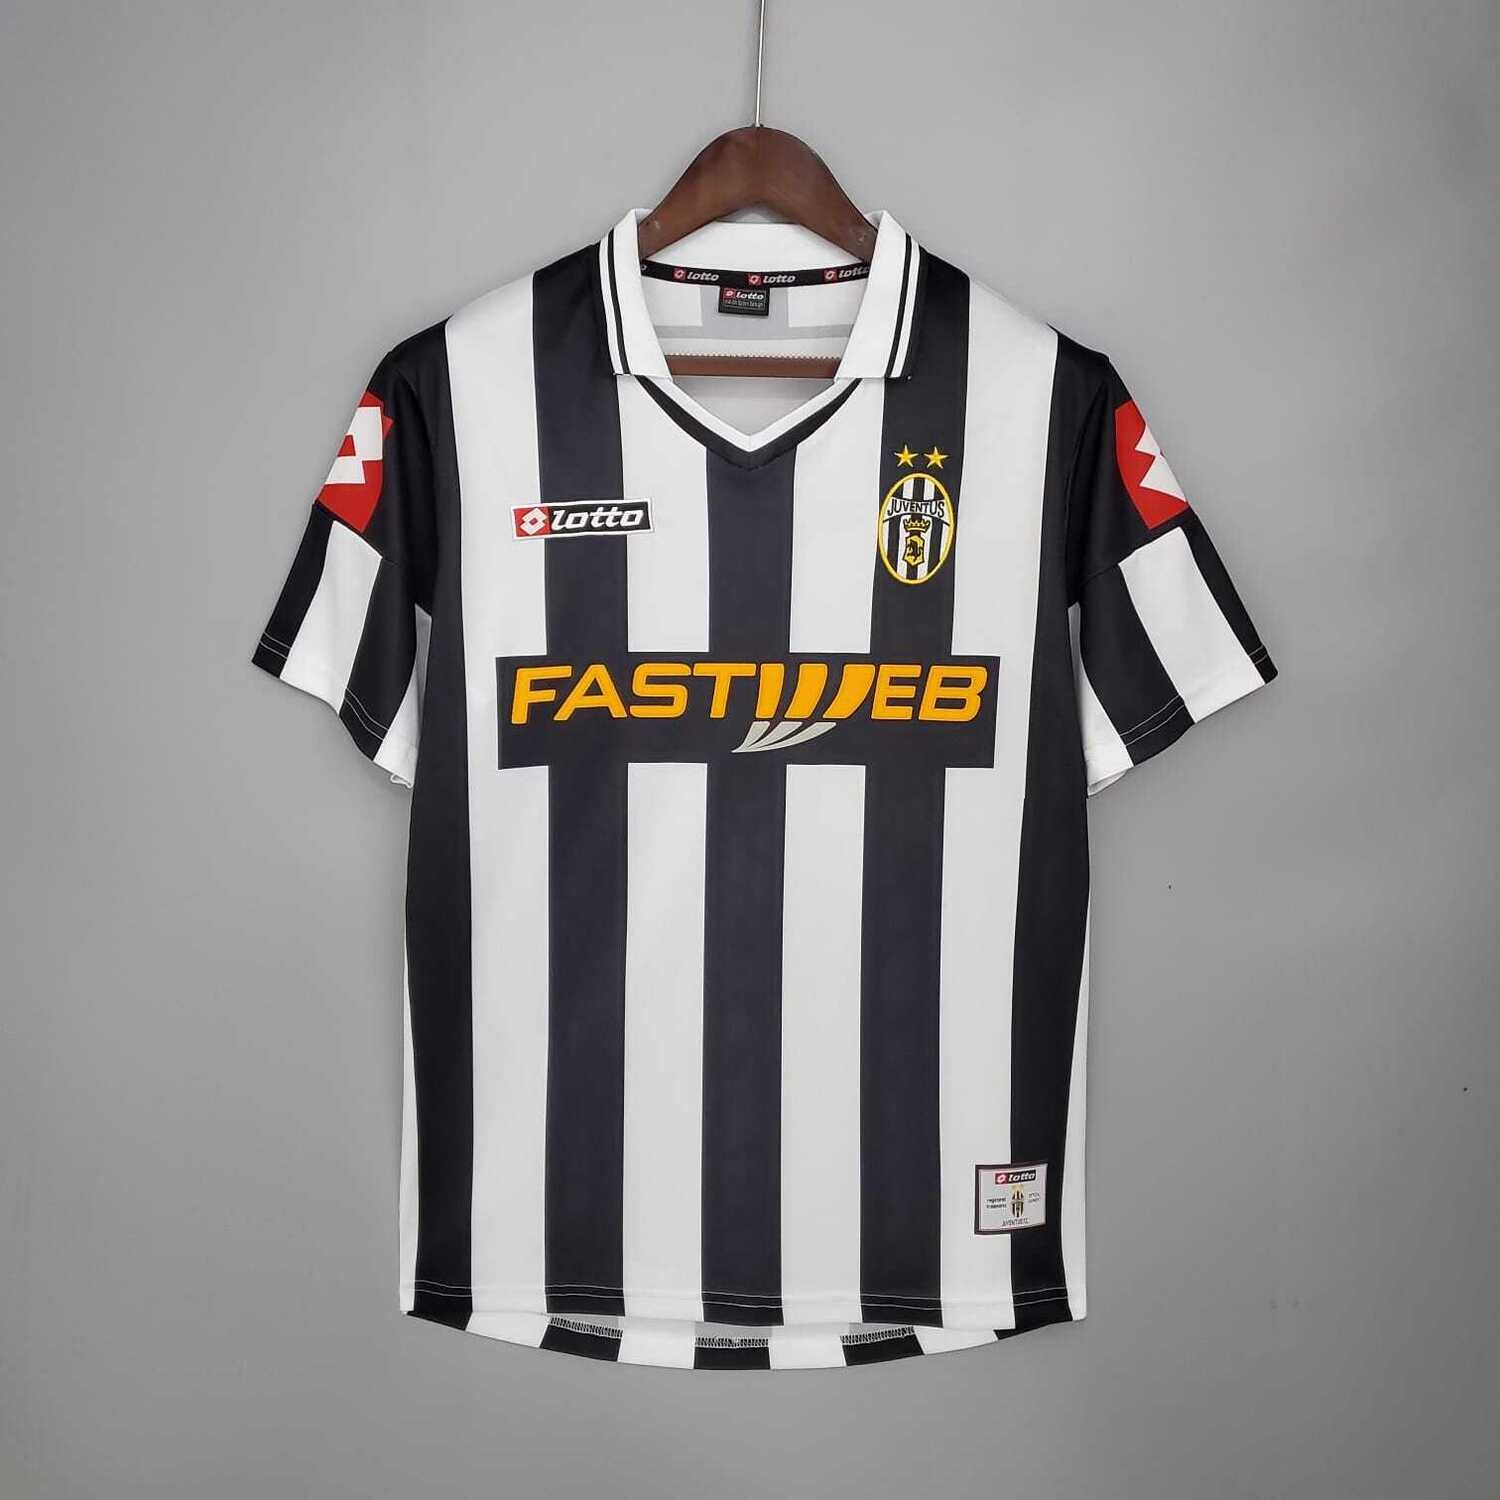 Juventus 2001-02 Retro Home Jersey [Pre-paid Only]